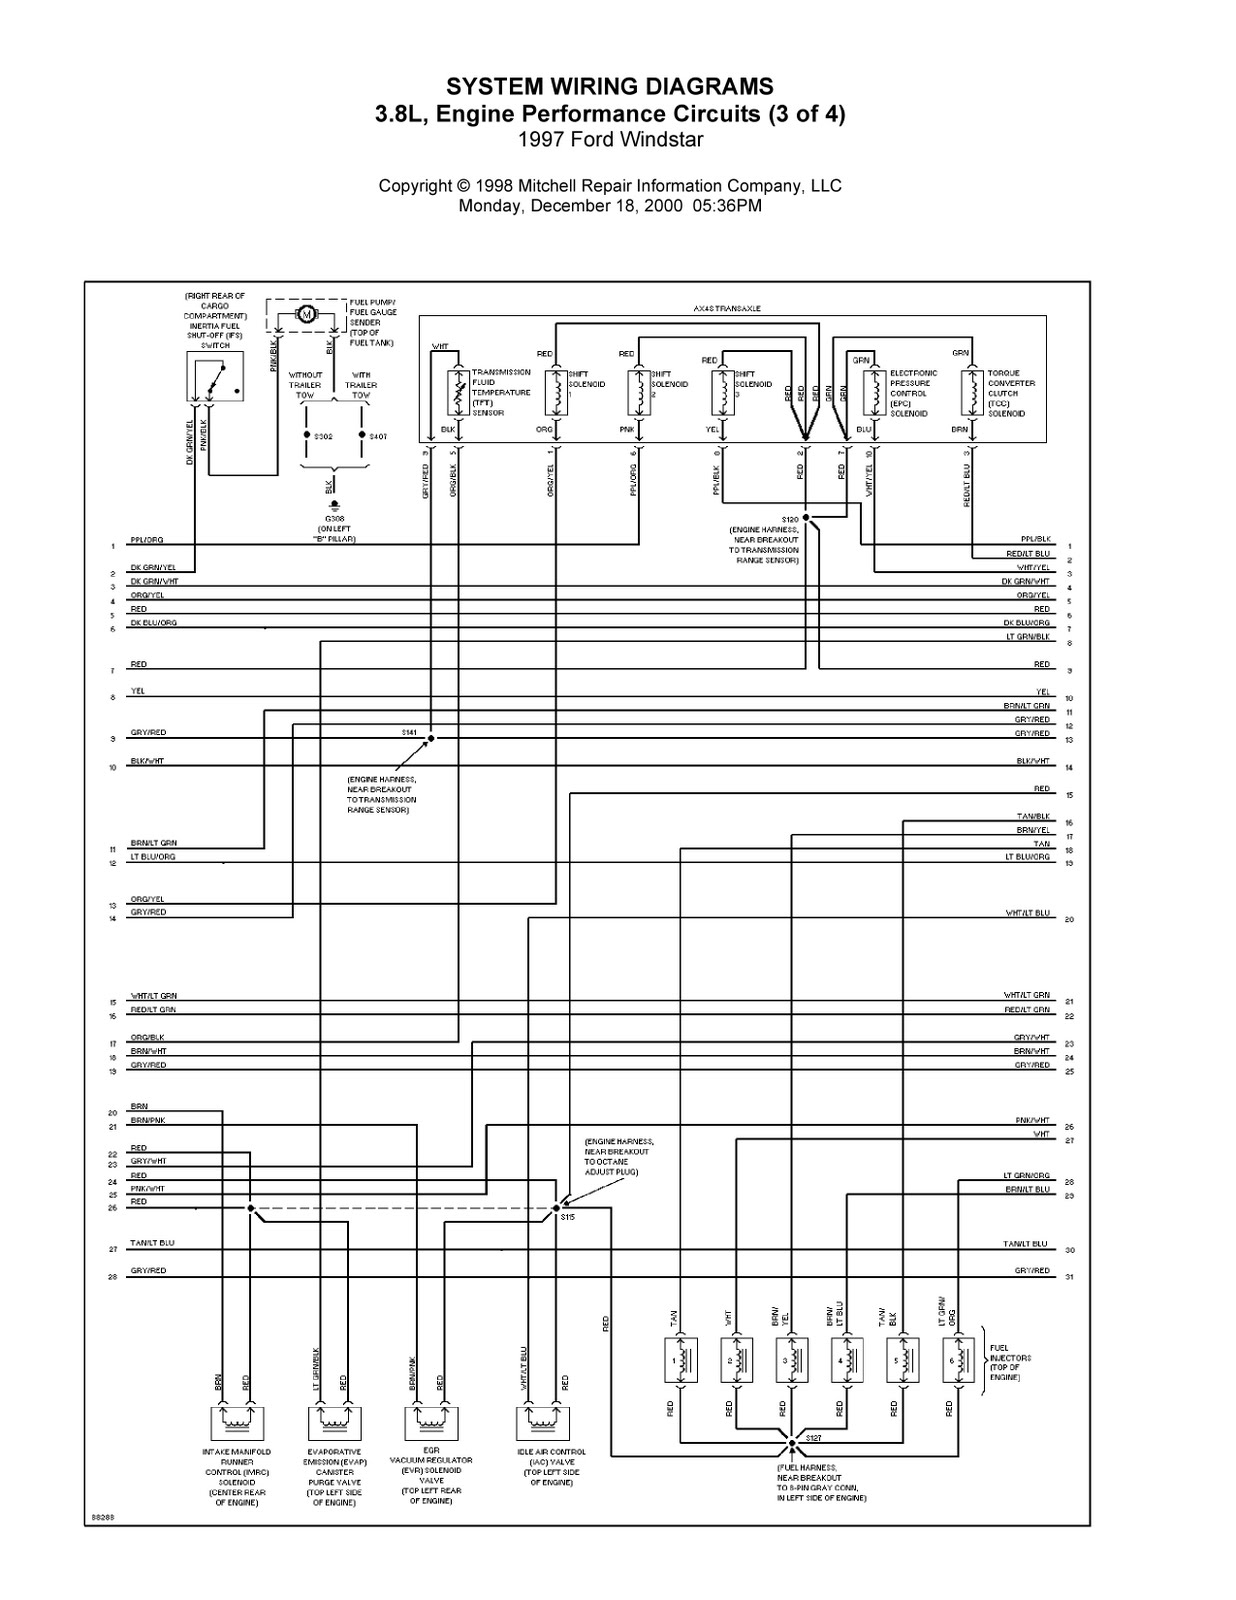 Ford Windstar Electrical Wiring Diagrams Real Diagram 2003 1997 Complete System 2000